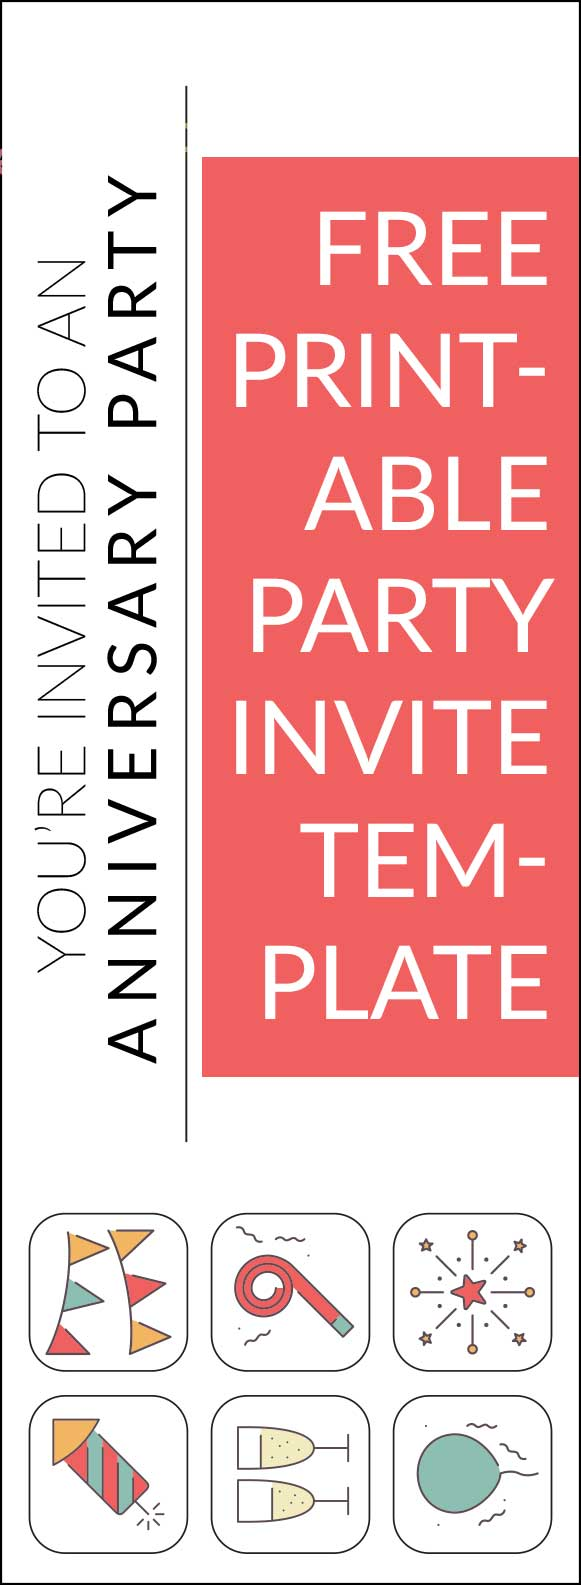 Iconic Anniversary Party Invites to Print - Free Printables Online